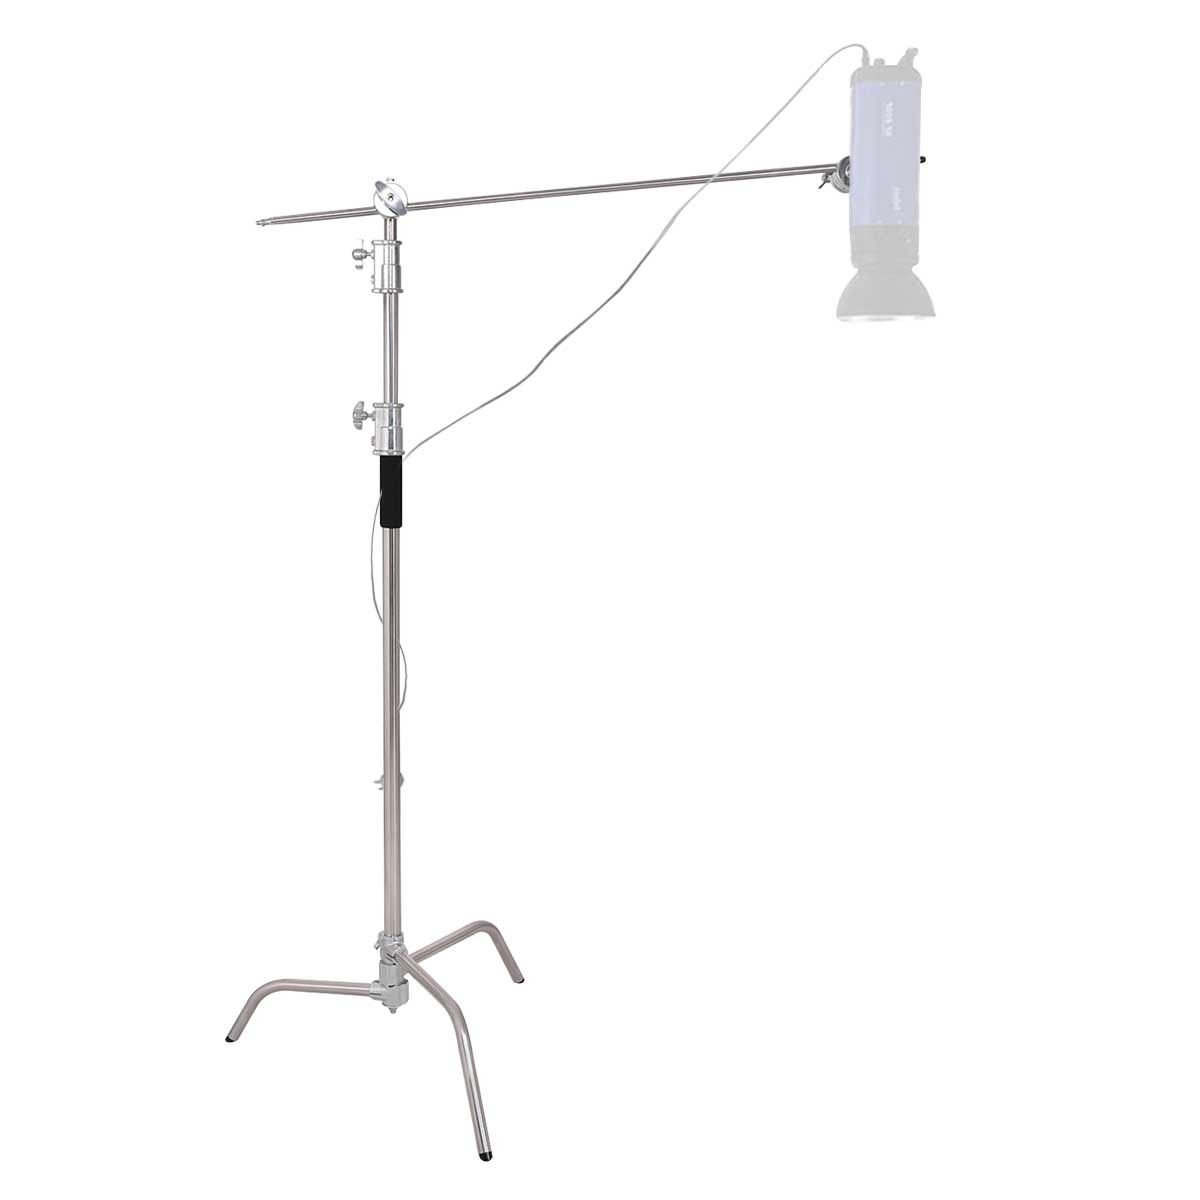 Safstar Pro Adjustable Reflector C-Stand w/Grip Head for Photography Studio Video Reflector,Monolight